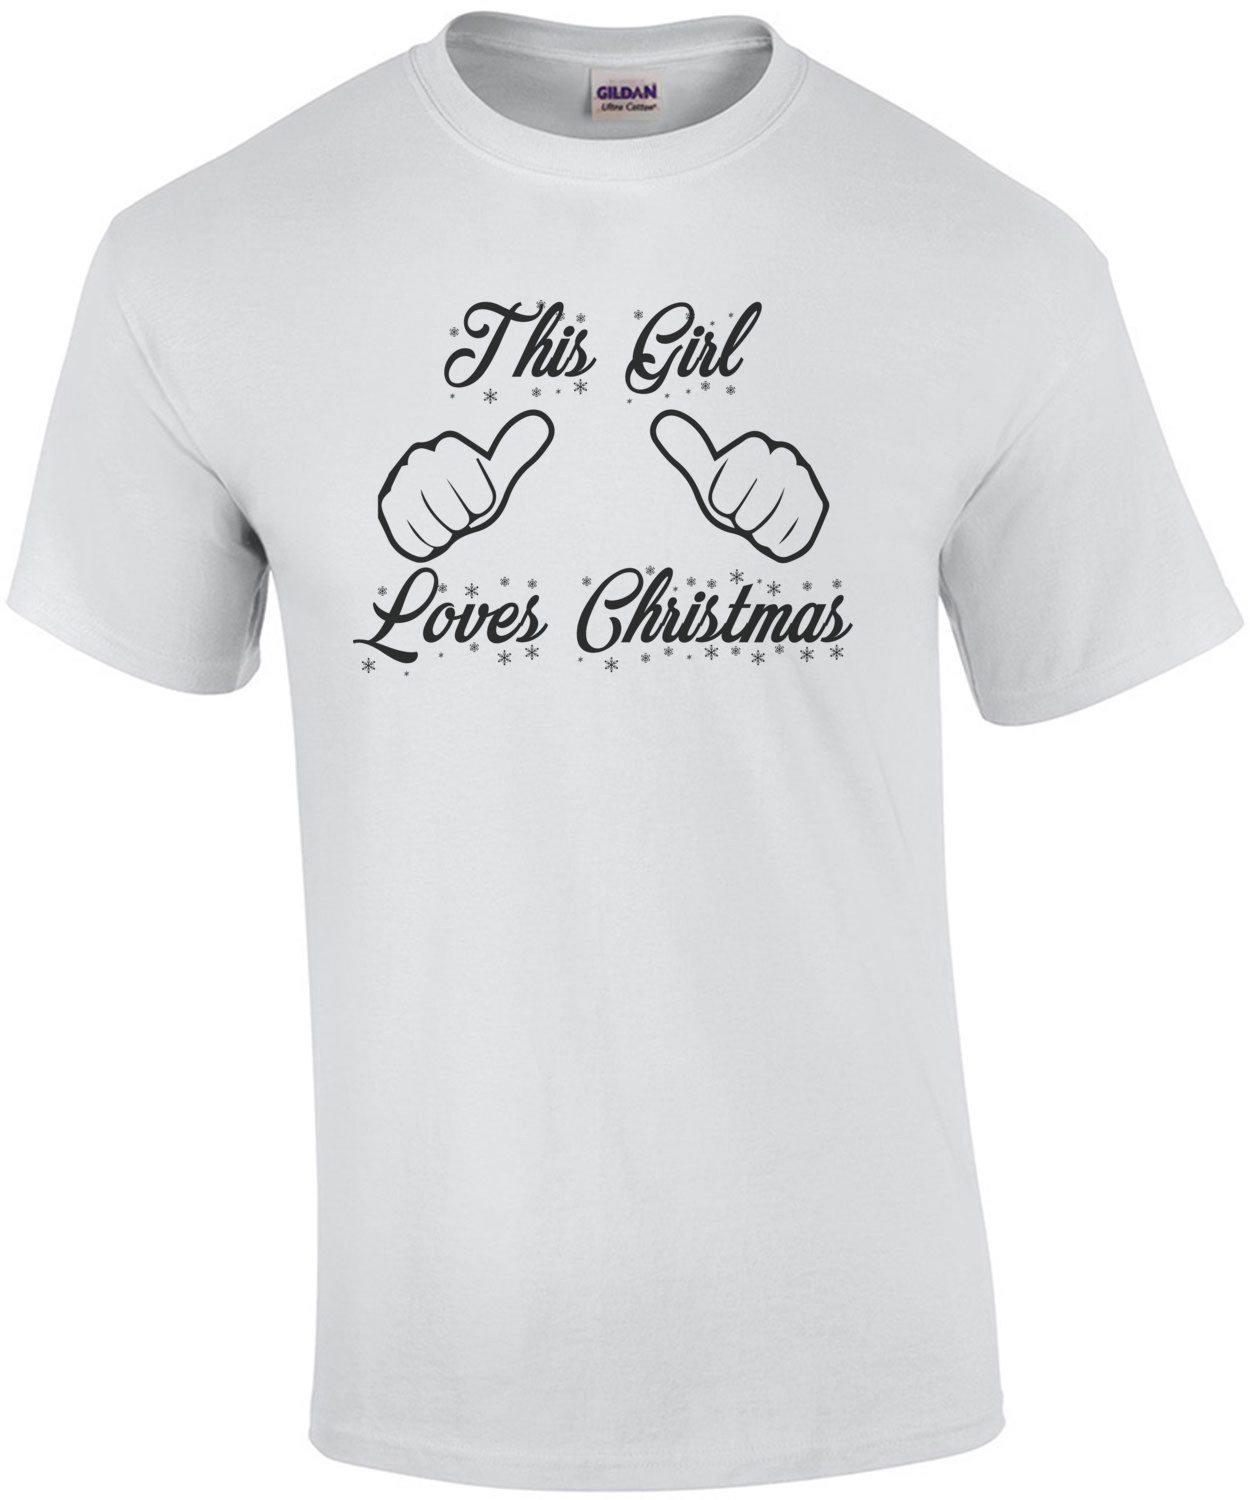 This girl loves Christmas - Funny Christmas T-Shirt